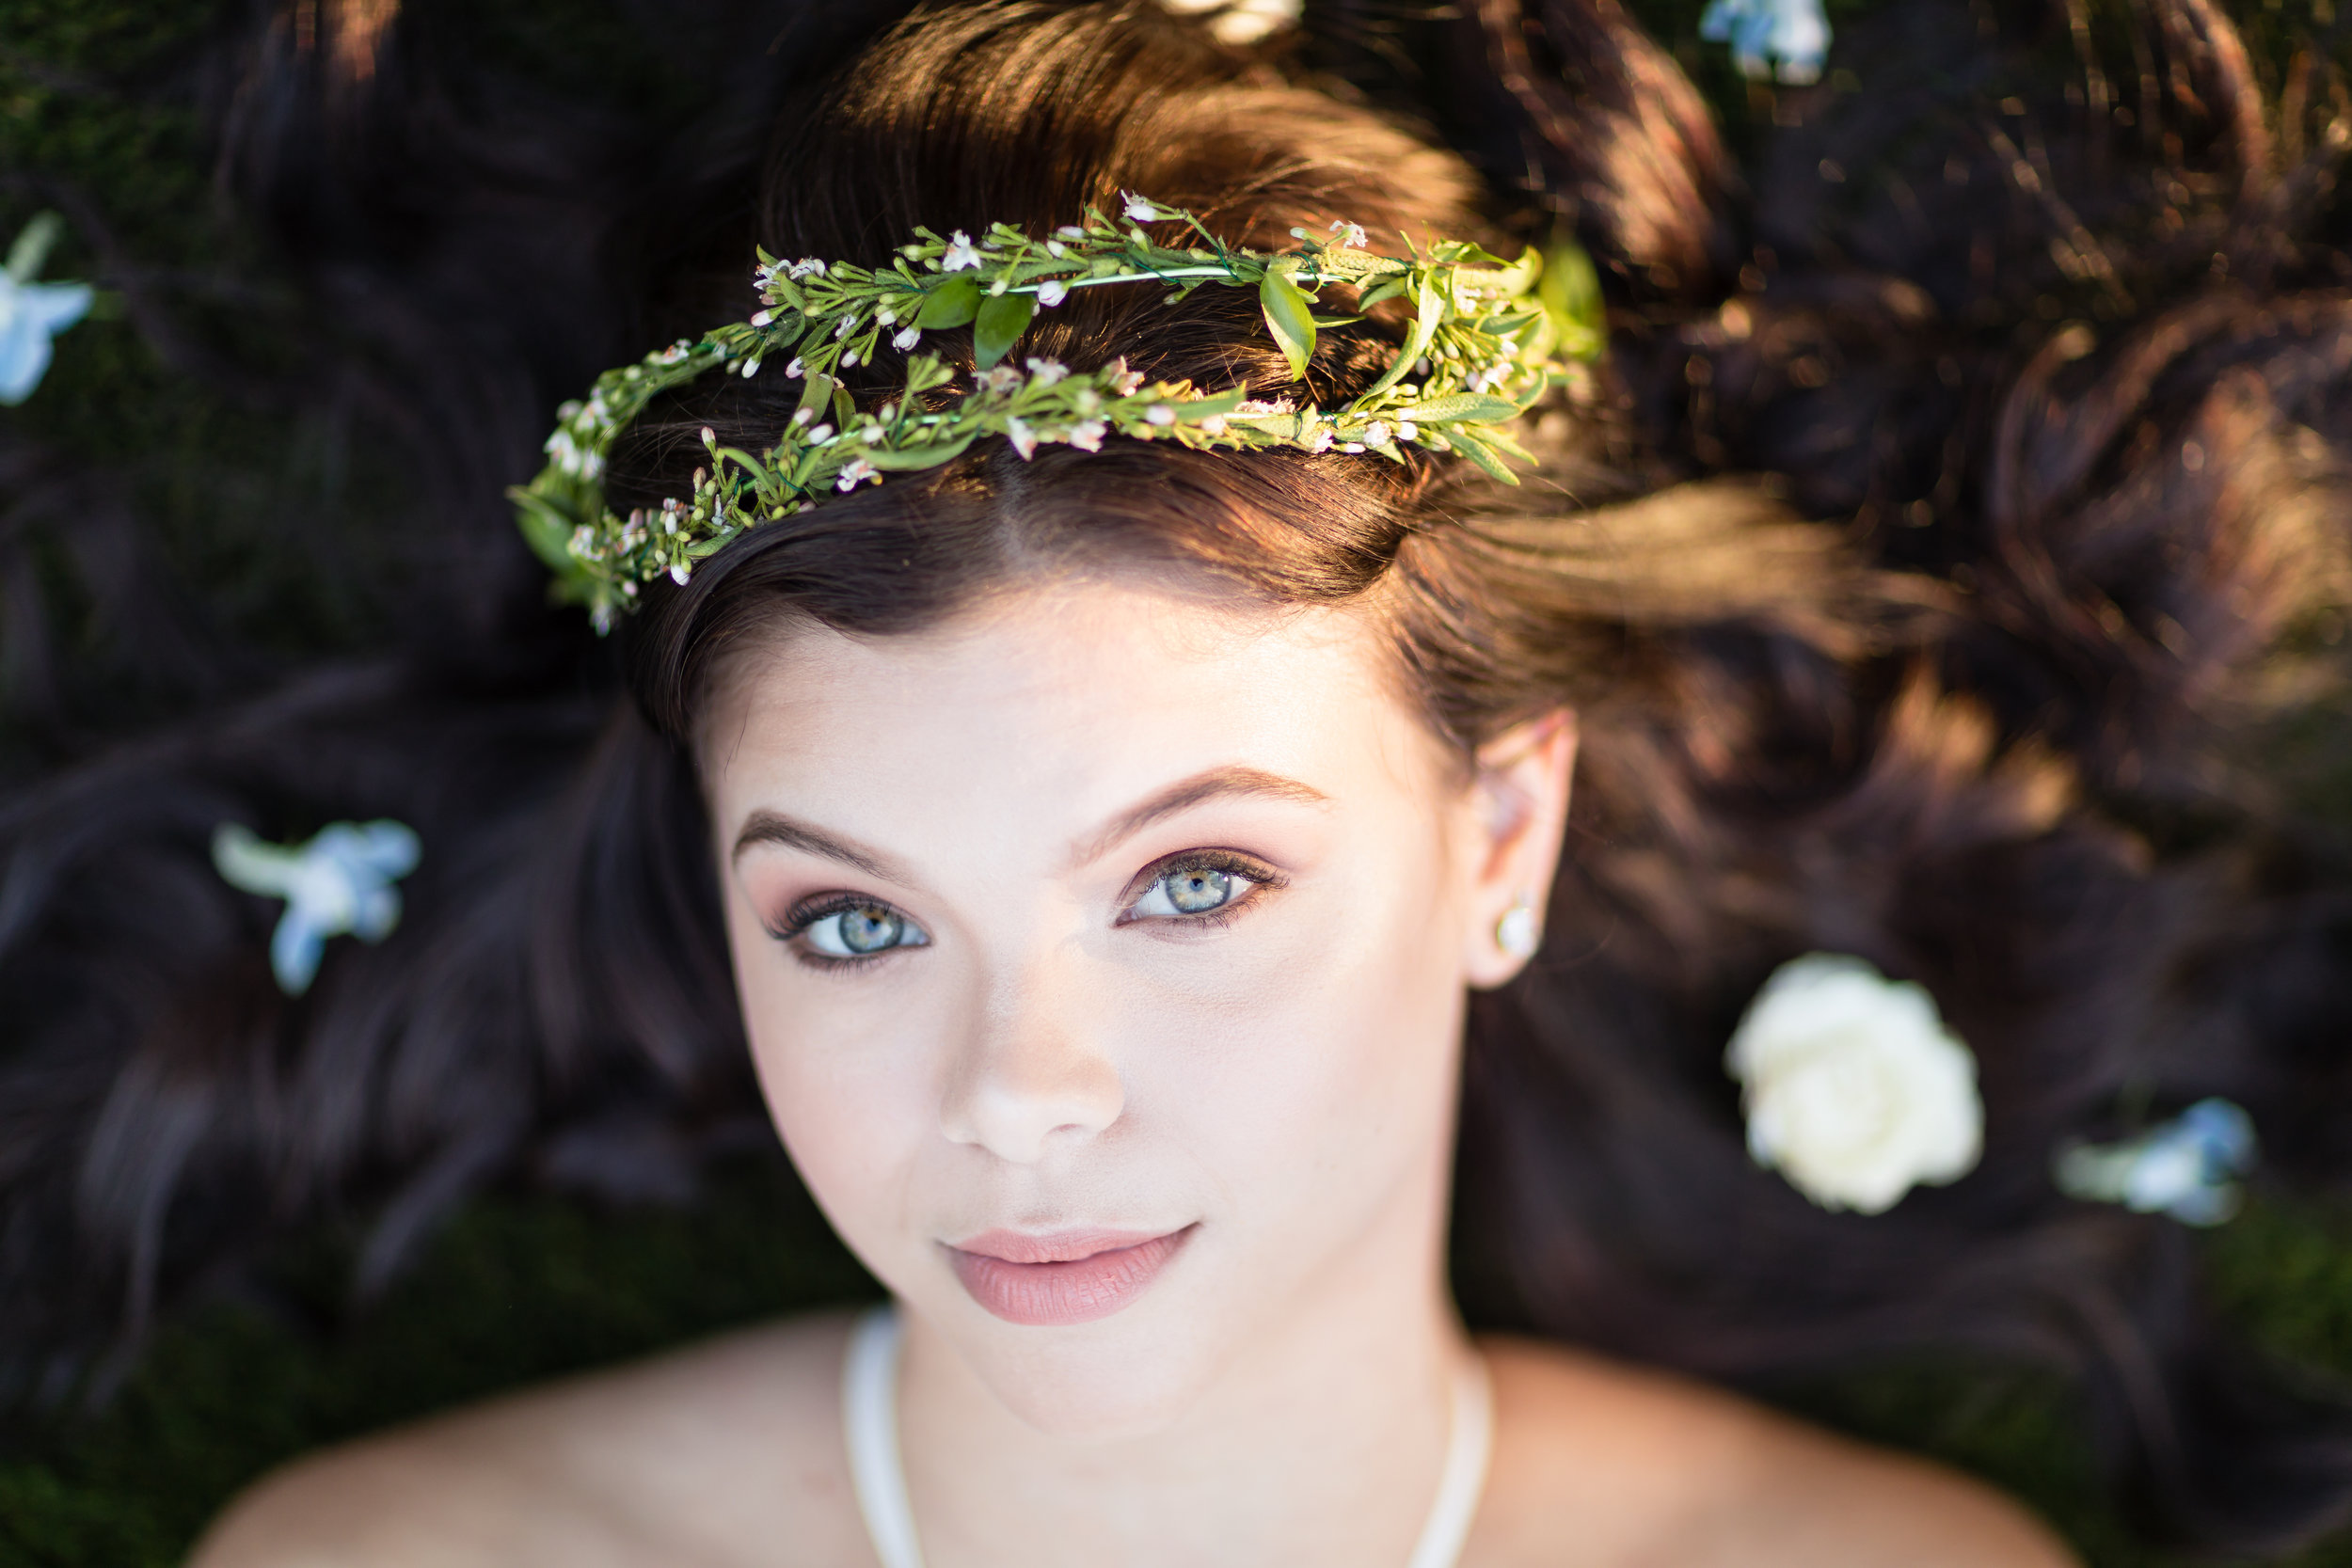 Model:  Makenna Elise Harris   Makeup Artist:  Maria R Shaw of MRS Artistry    Florals:  Laura Williams of PoppyHill Flowers   Hair Stylist:  Laura Jimenez of Lush Core Glamour    Dresses by  Elison Road  and  Lulus